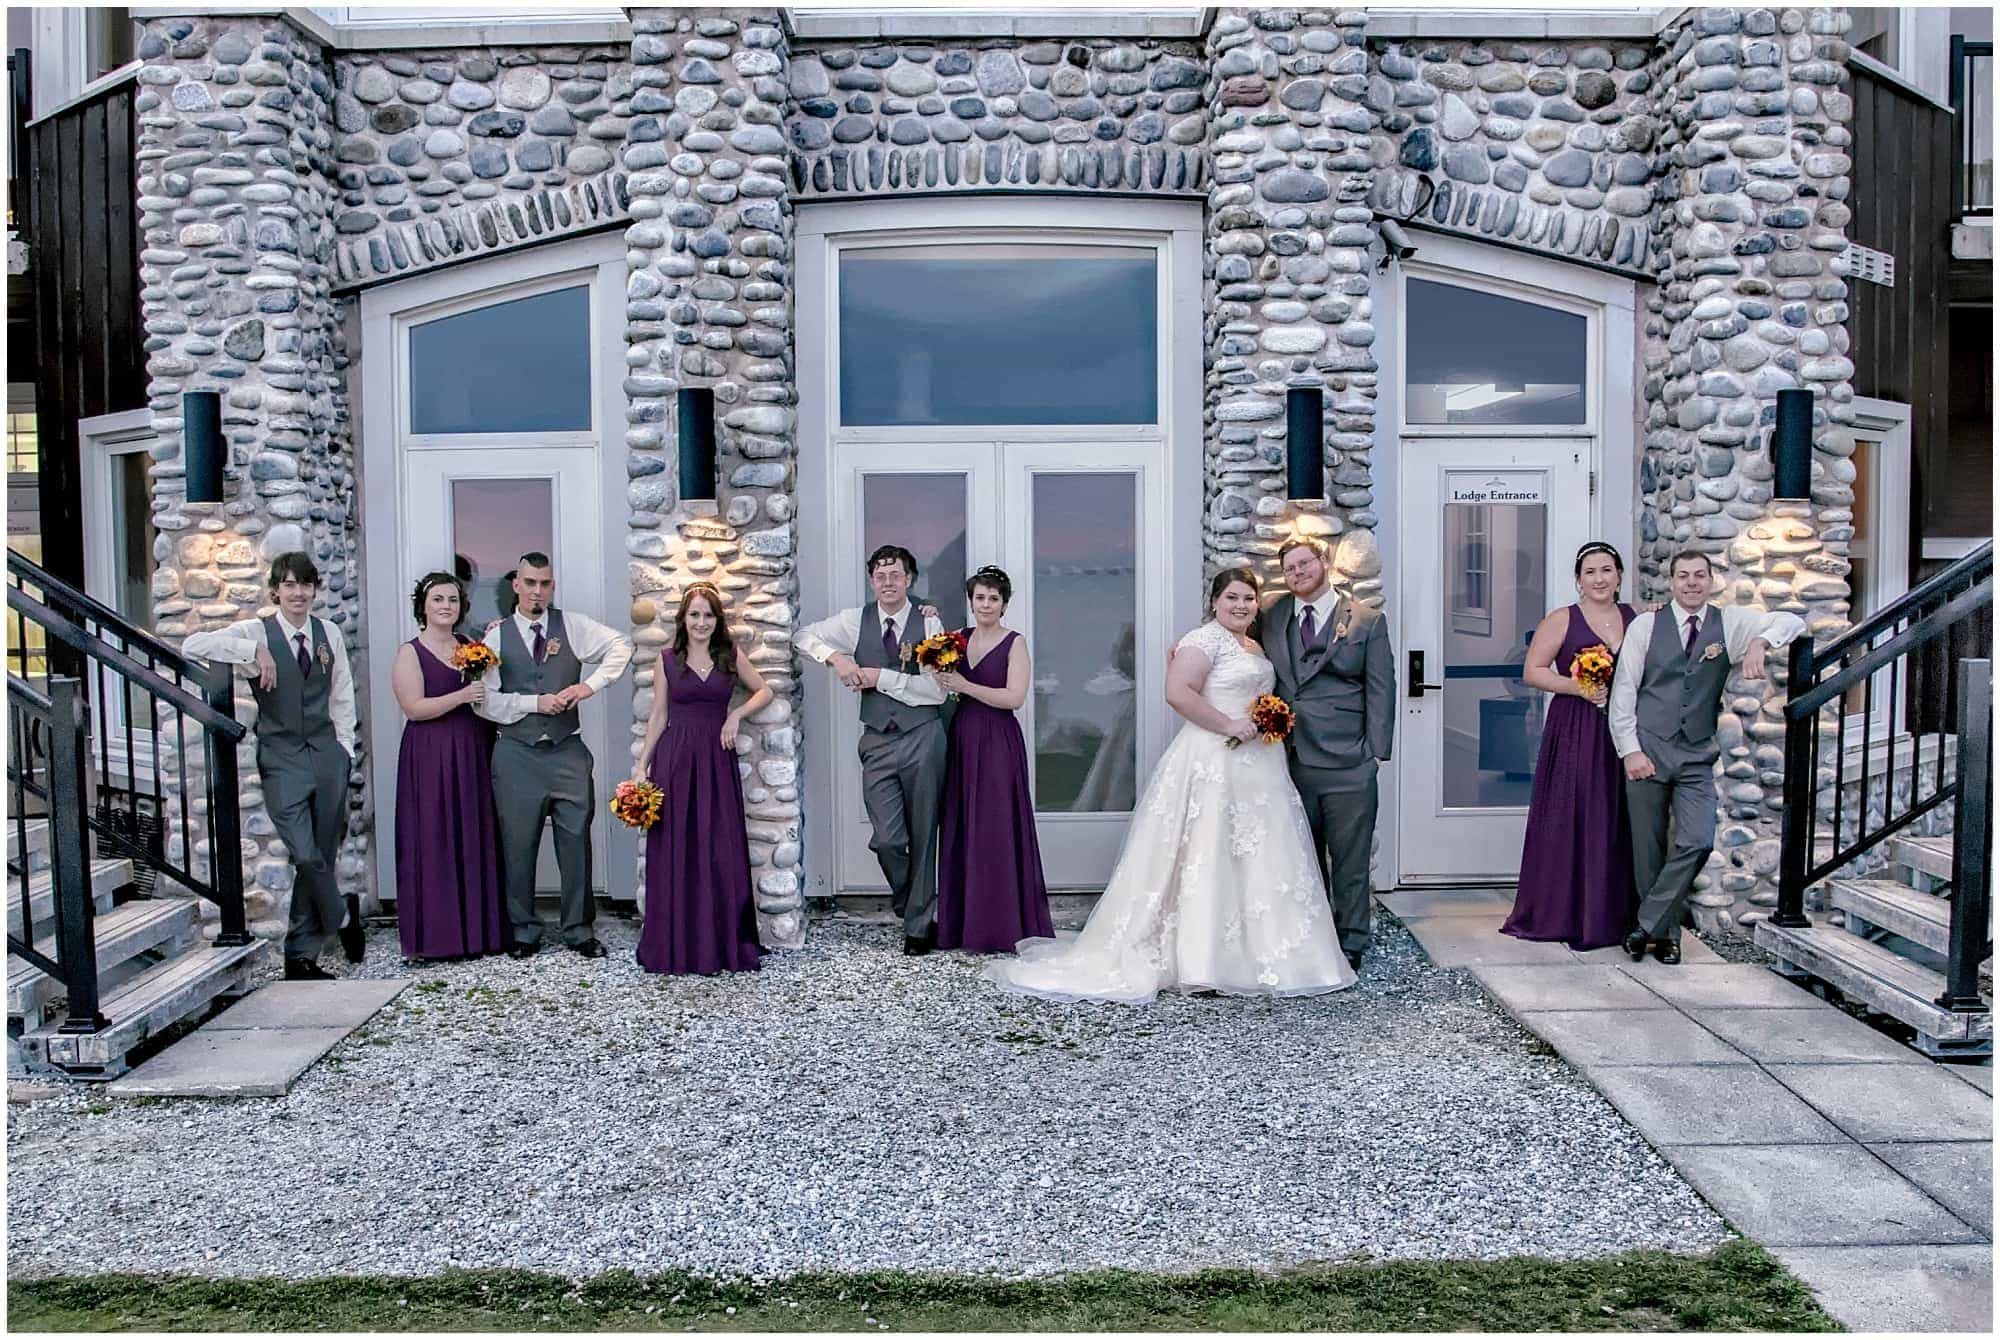 The bride and groom pose with their wedding party for wedding photos at White Point Beach Resort in Nova Scotia.